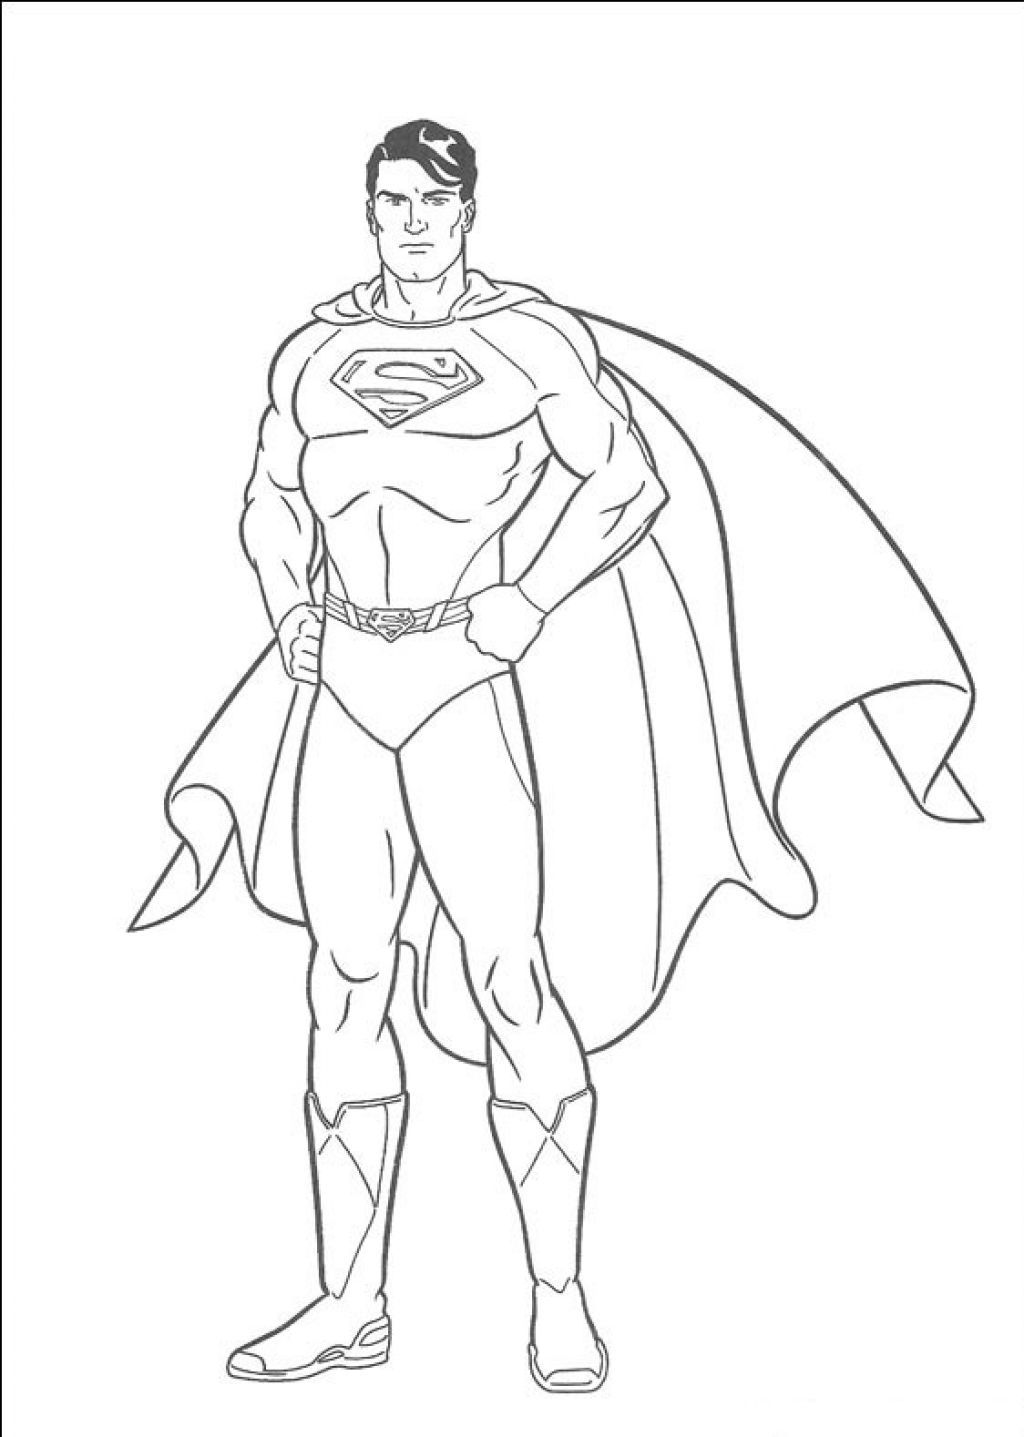 Free superman coloring pages with 14 kids | Coloring pages for adult ...